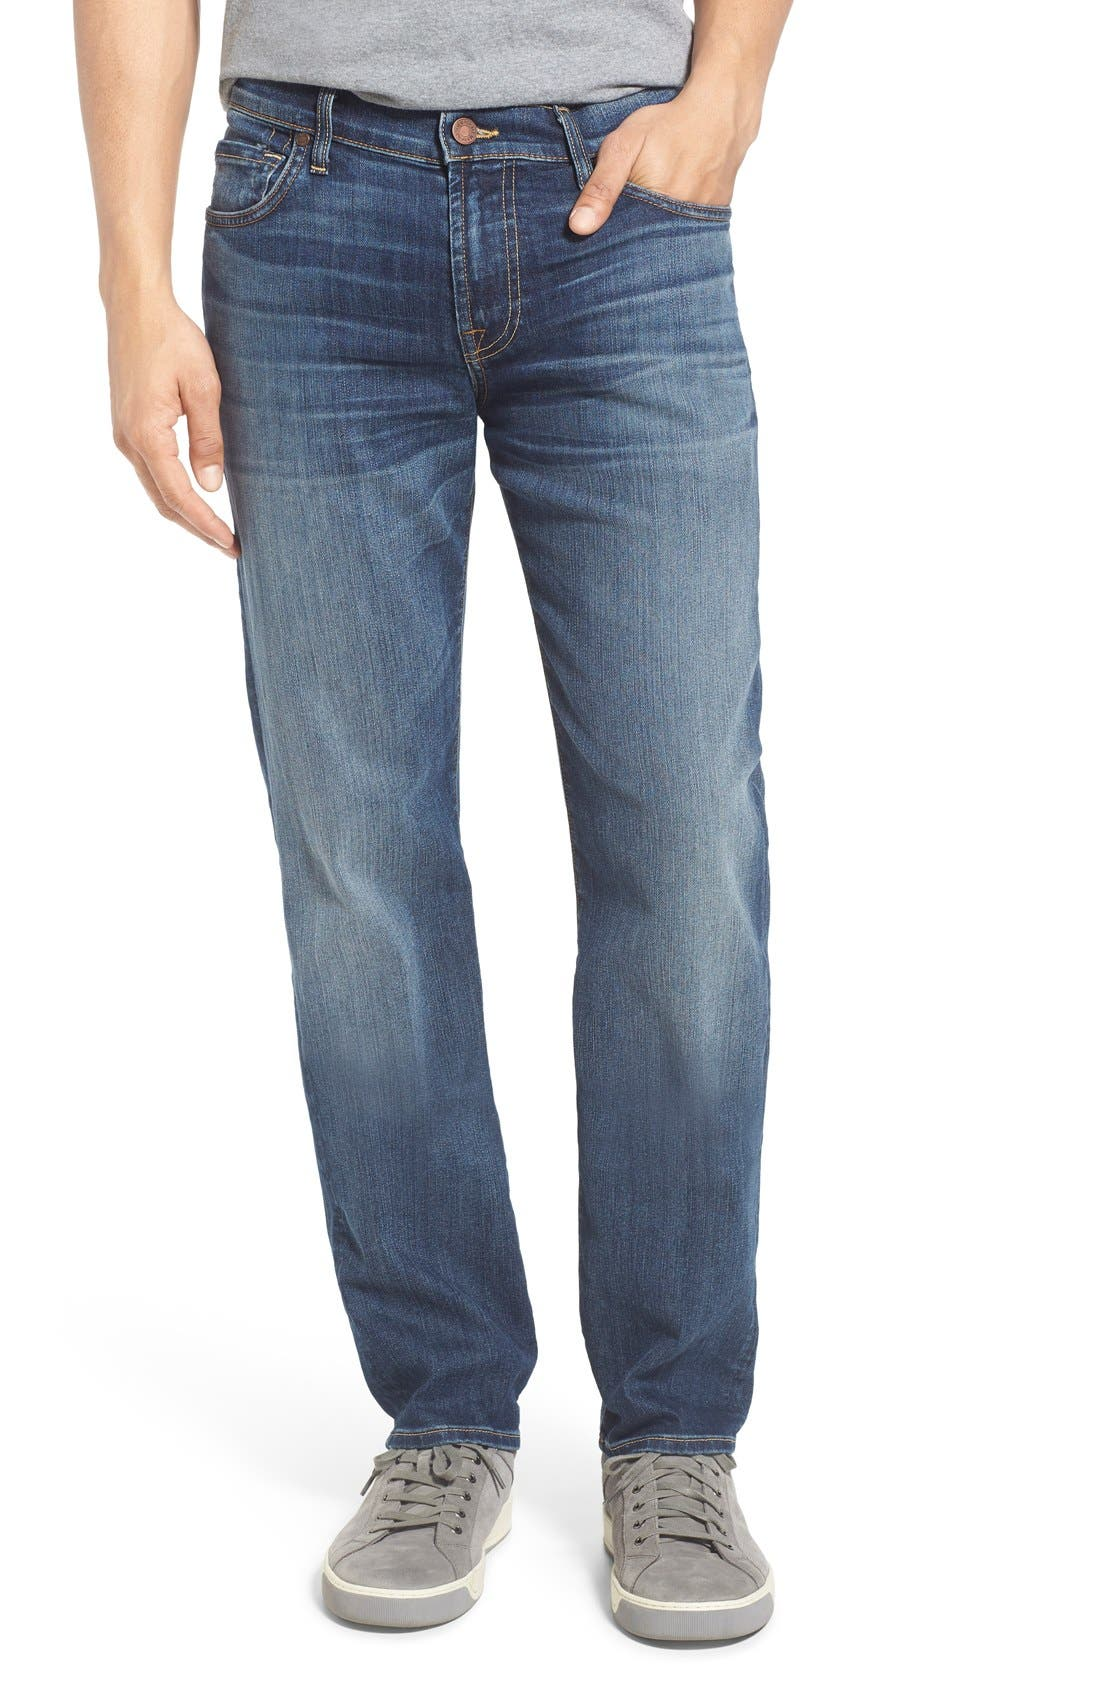 Alternate Image 1 Selected - 7 For All Mankind® Slimmy Airweft Slim Fit Jeans (Riptide)